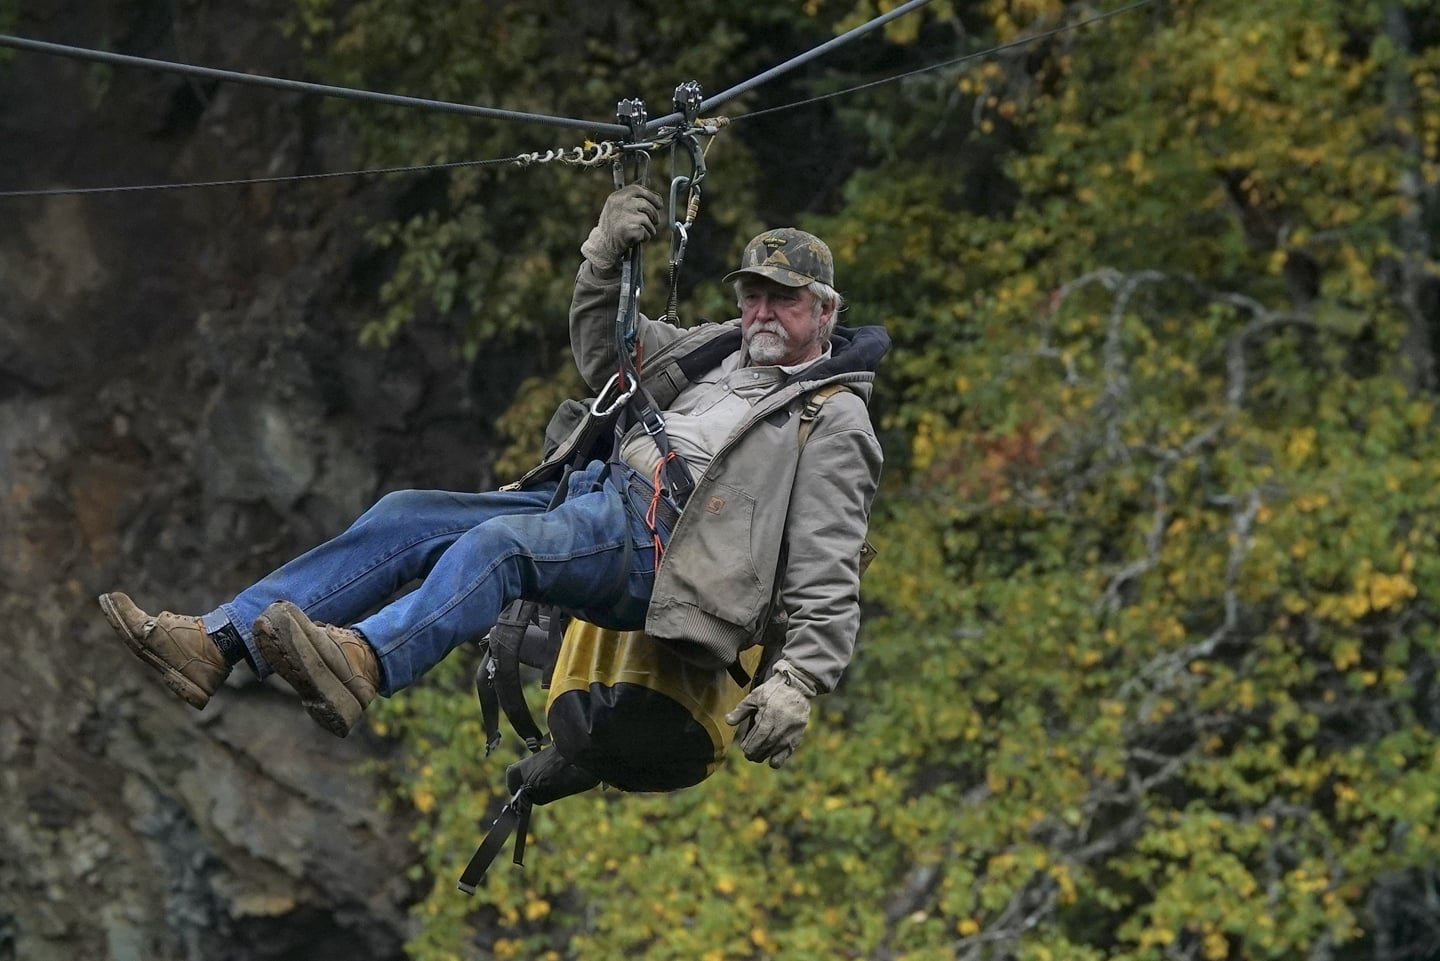 Dakota Fred pulls the stunt of sliding on a rope. His right is holing the harness while his body is leaned back. He is carrying a huge yellow bag on the side. He is wearing a camo cap, light brown jacket, jeans and a hiking boot.